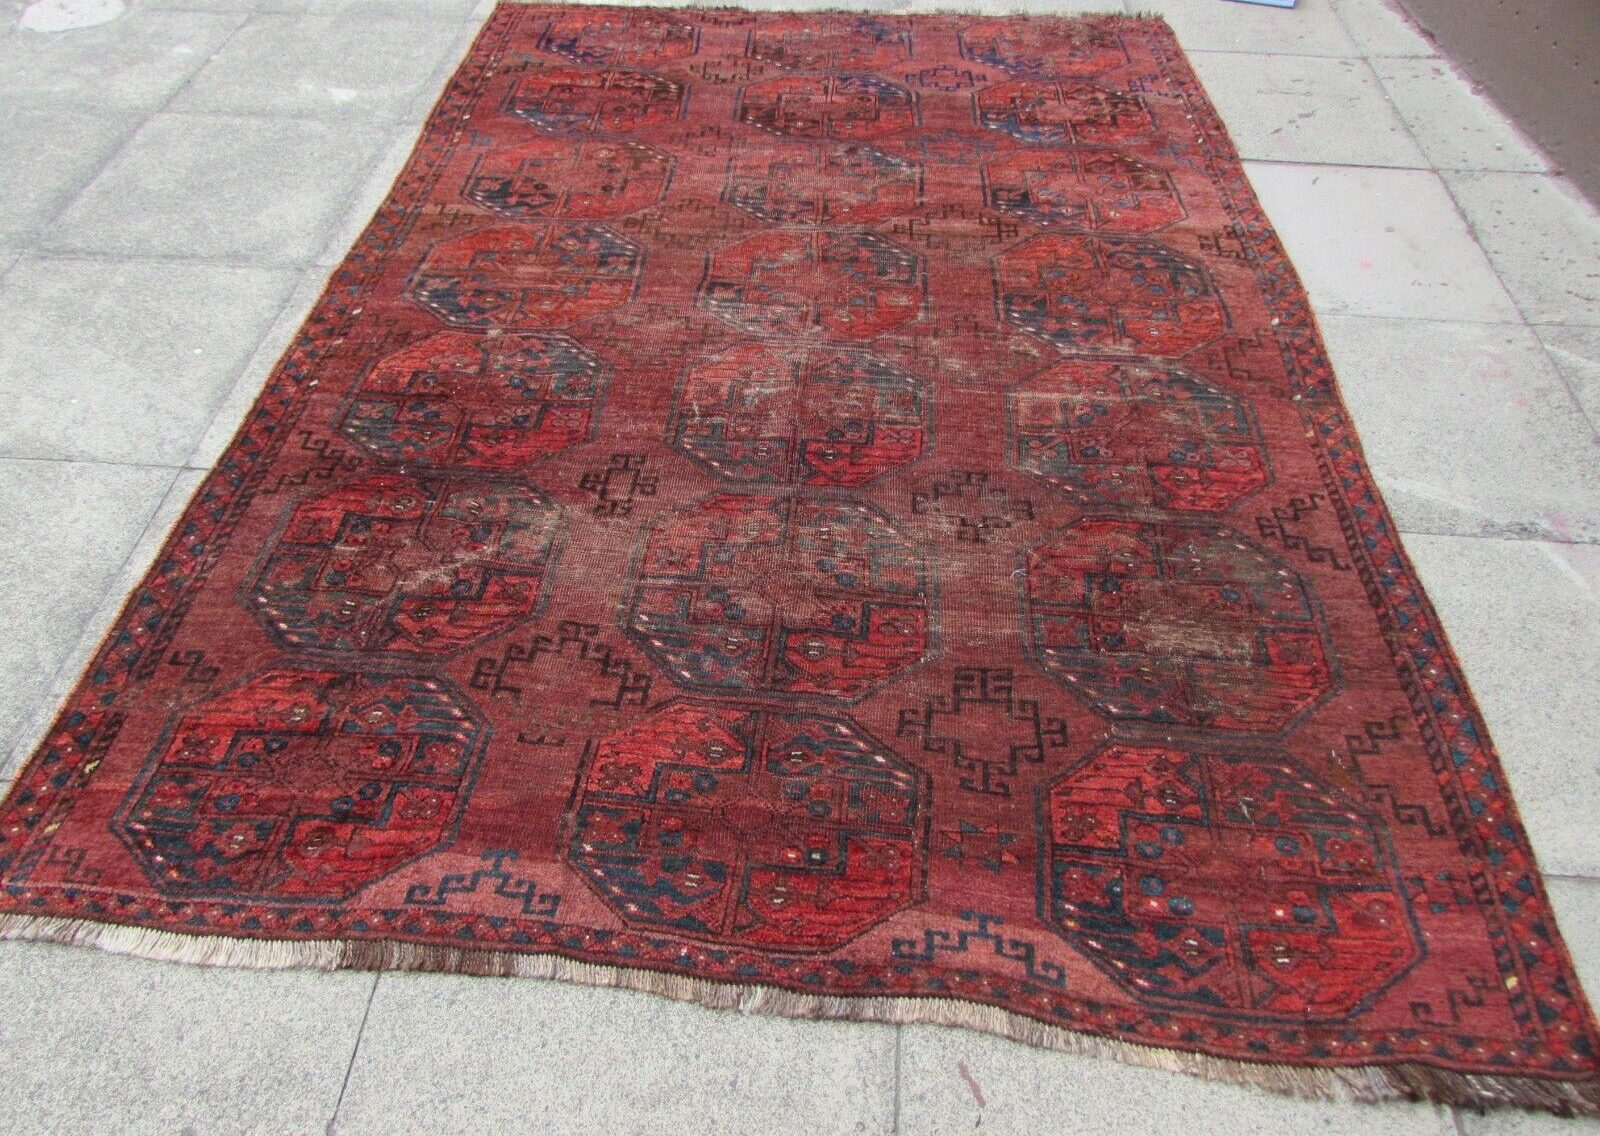 Vintage Persian Style Rugs And Blankets Vintage Gathering